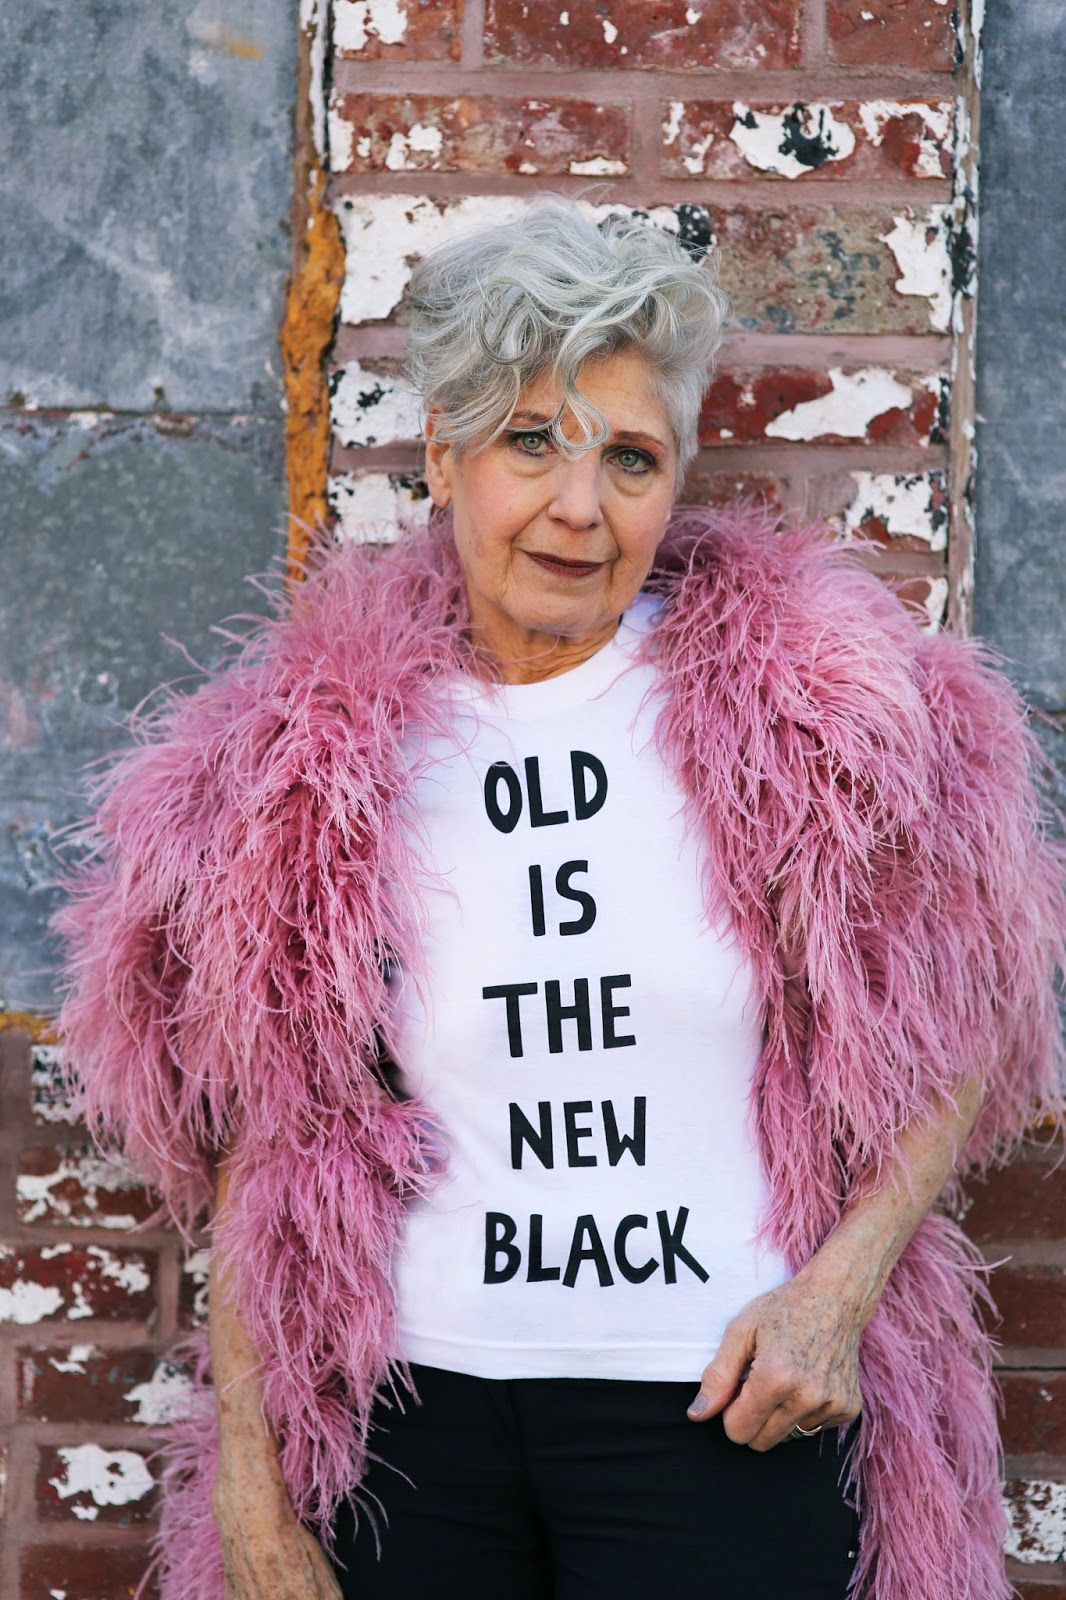 The Twiggy effect? Older women as models in fashion and beauty campaigns